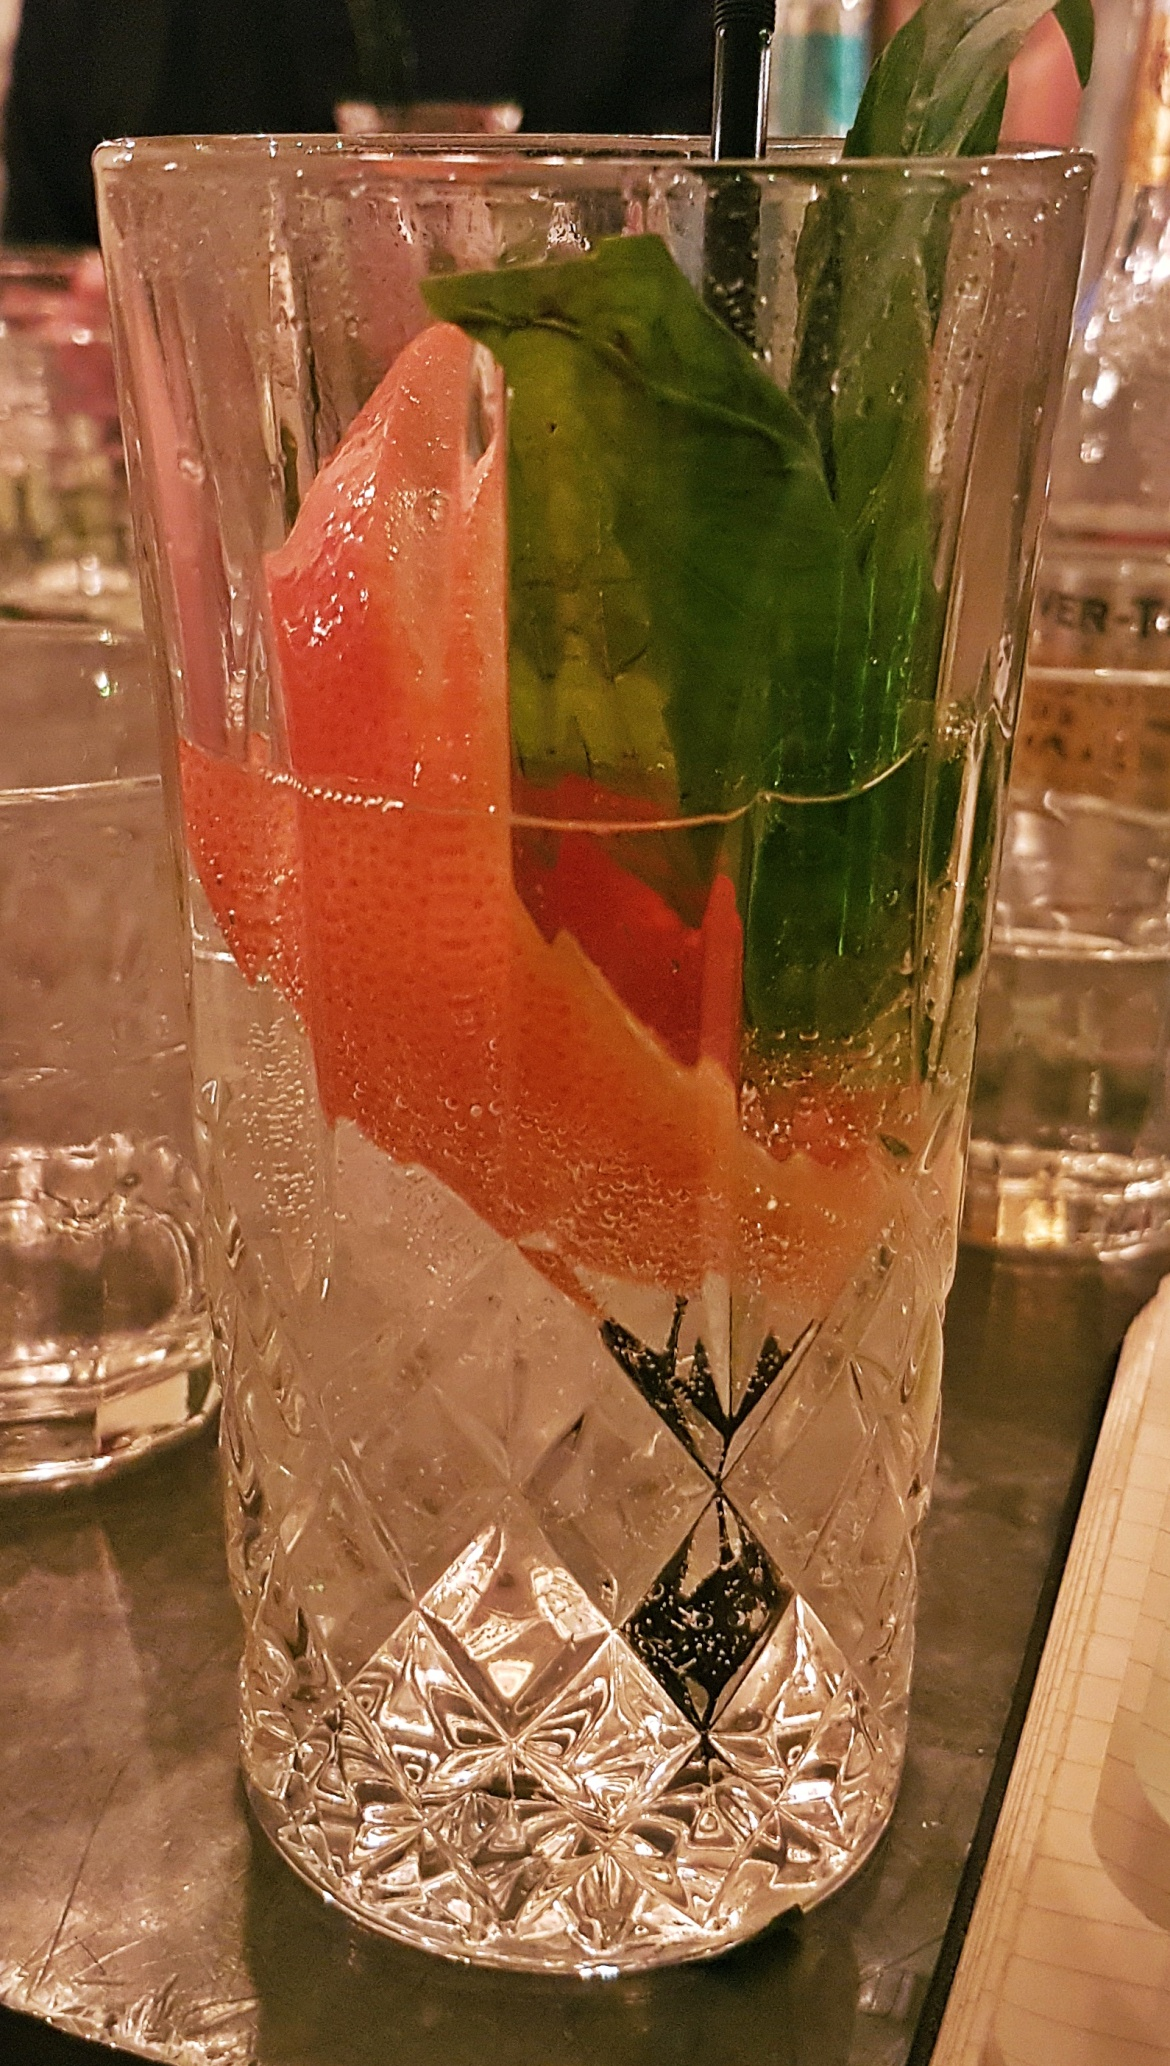 Langley's No. 8 gin perfect serve - Gin Masterclass at the Botanist Leeds, review by BeckyBecky Blogs